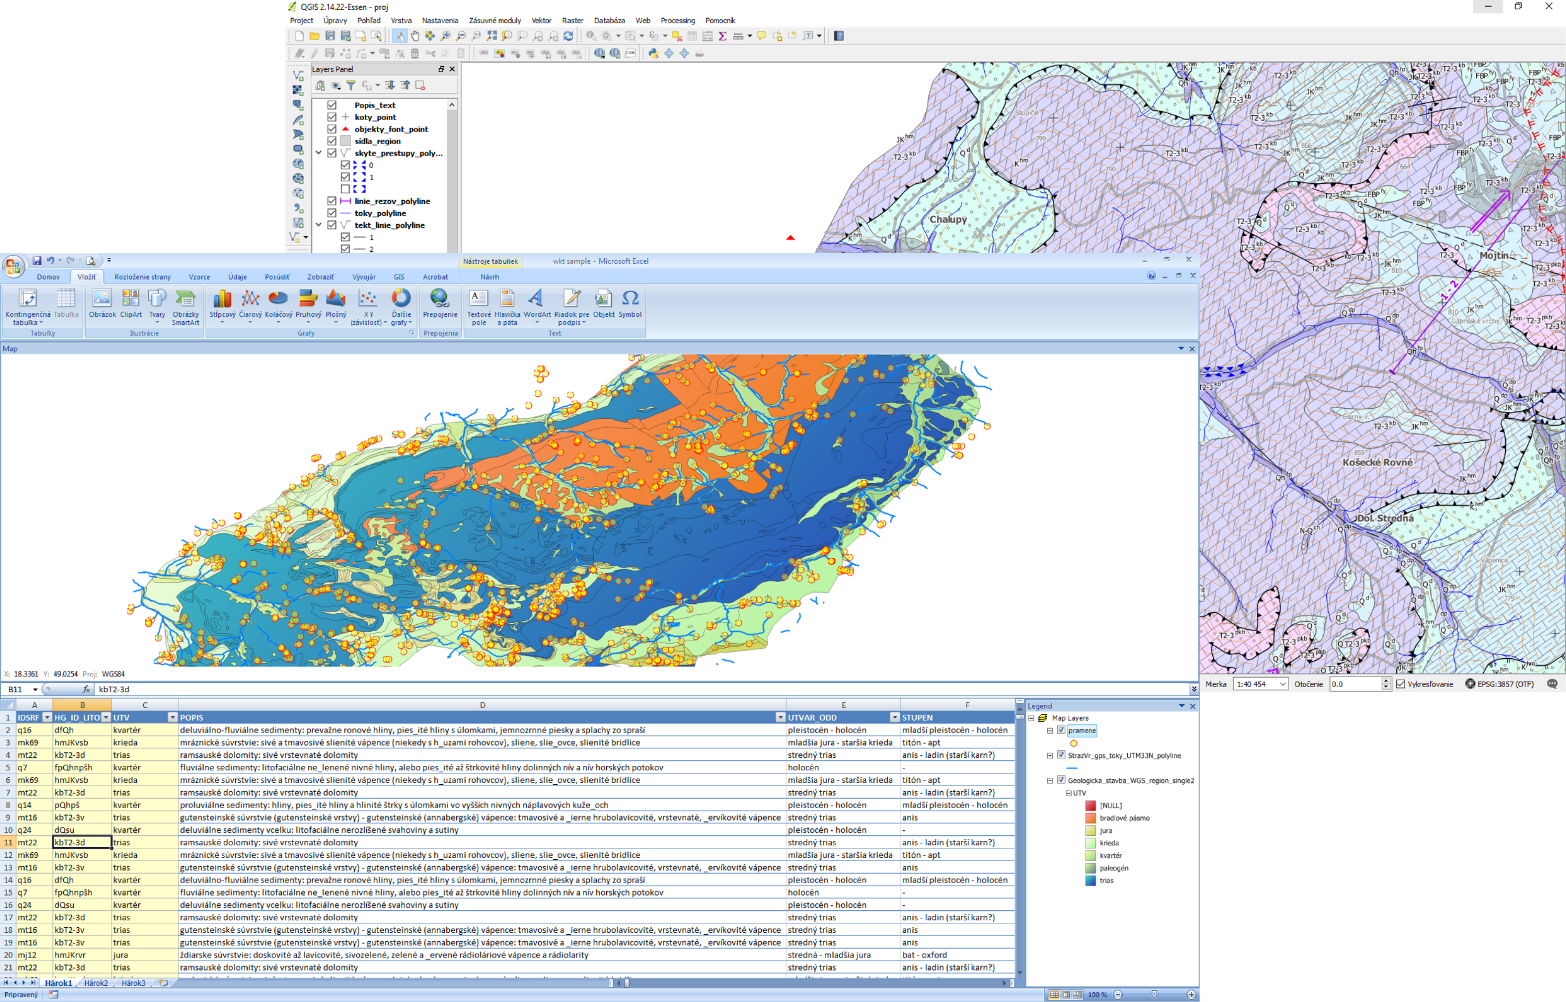 GIS XL | FAQ: Differences Between GIS XL And Other GIS Tools